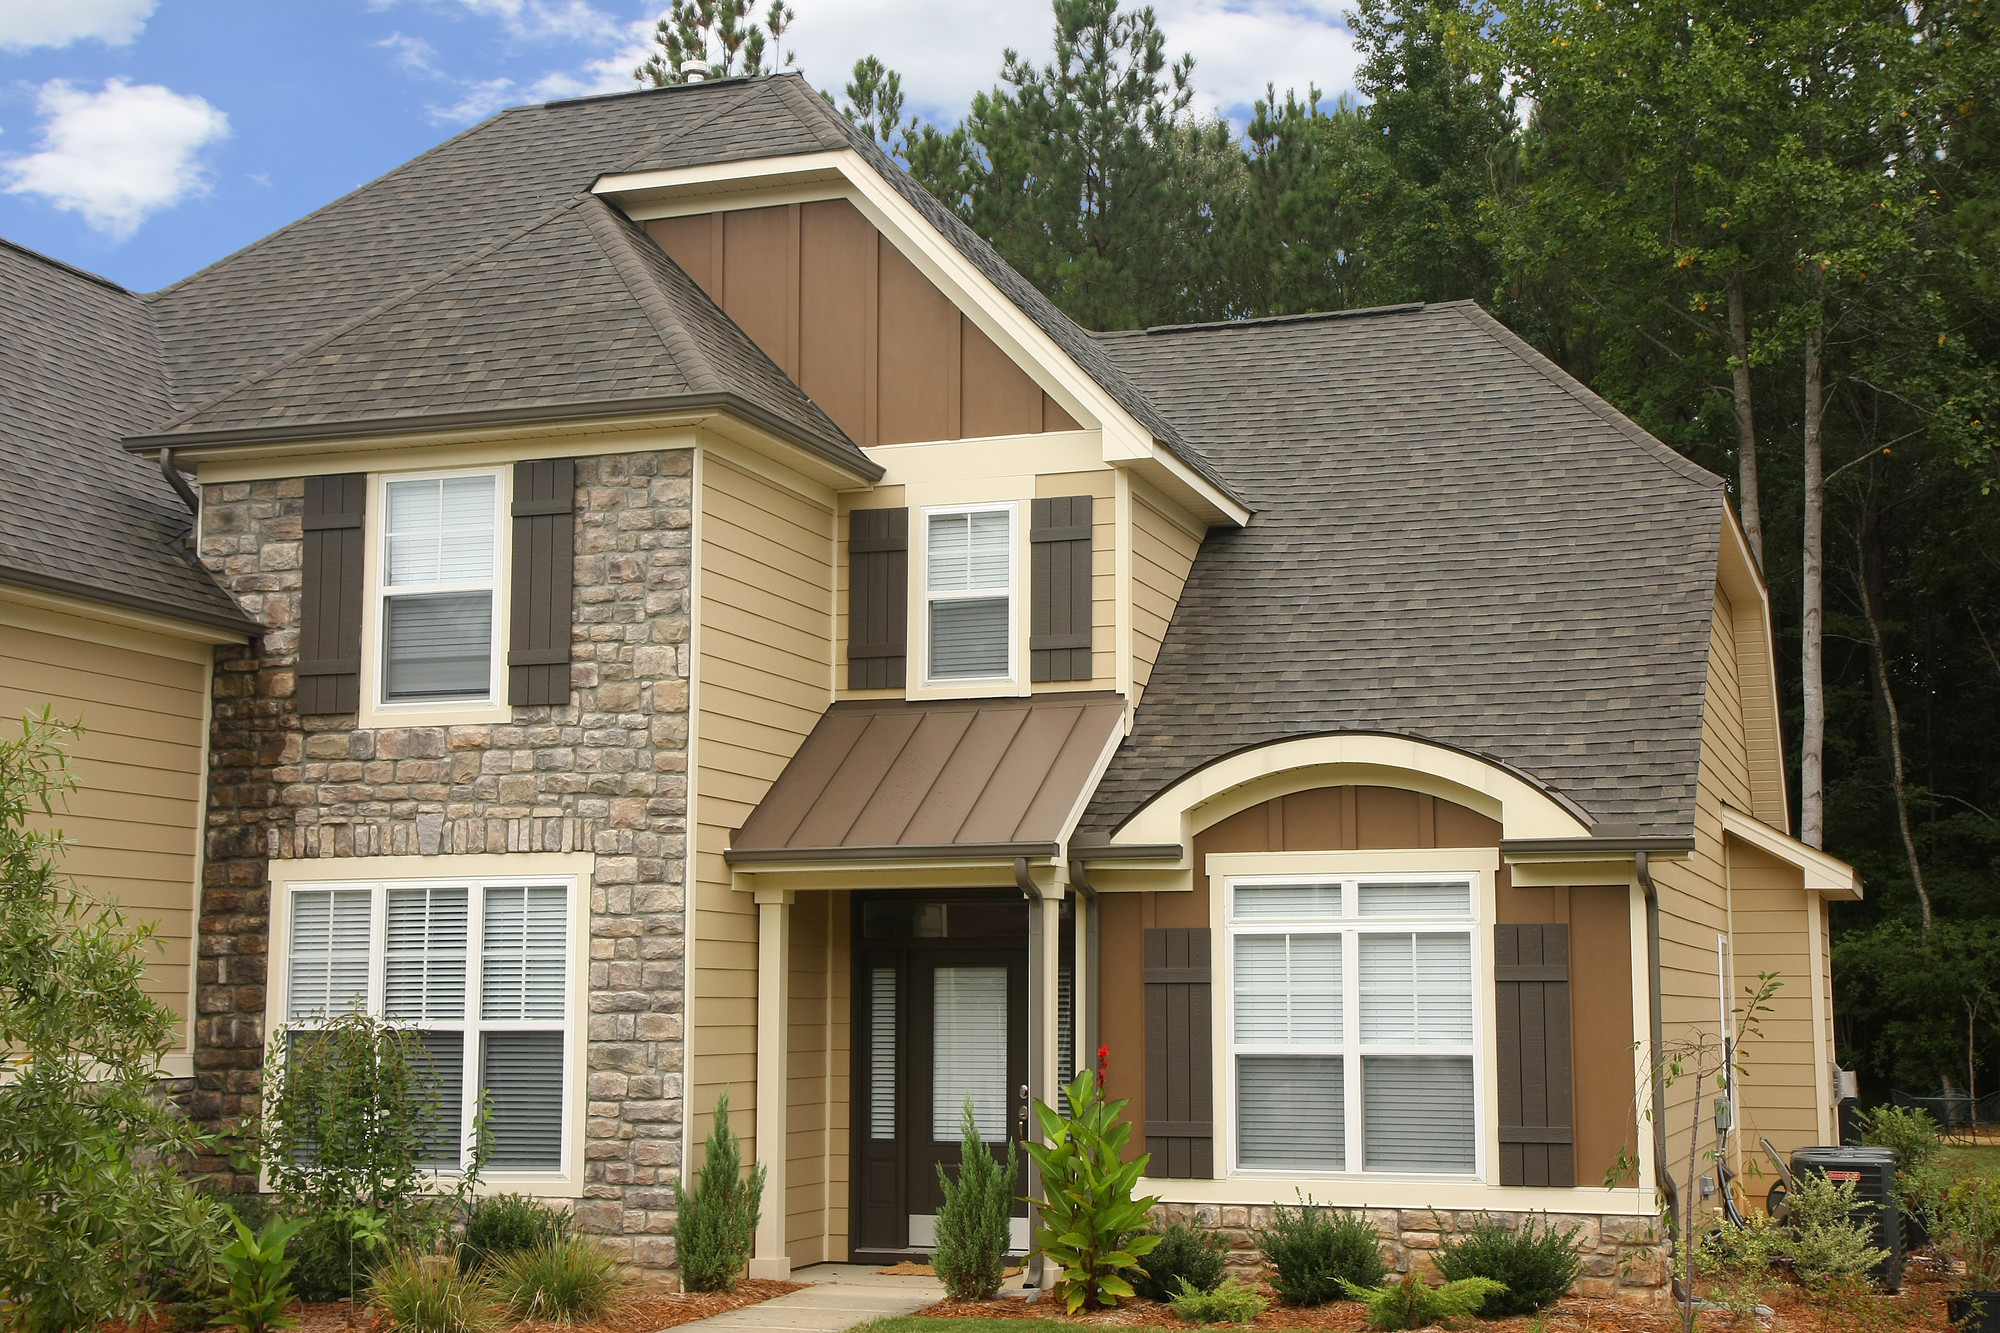 Most Popular Types of Siding for Homes - HomesFeed on Modern House Siding  id=11649